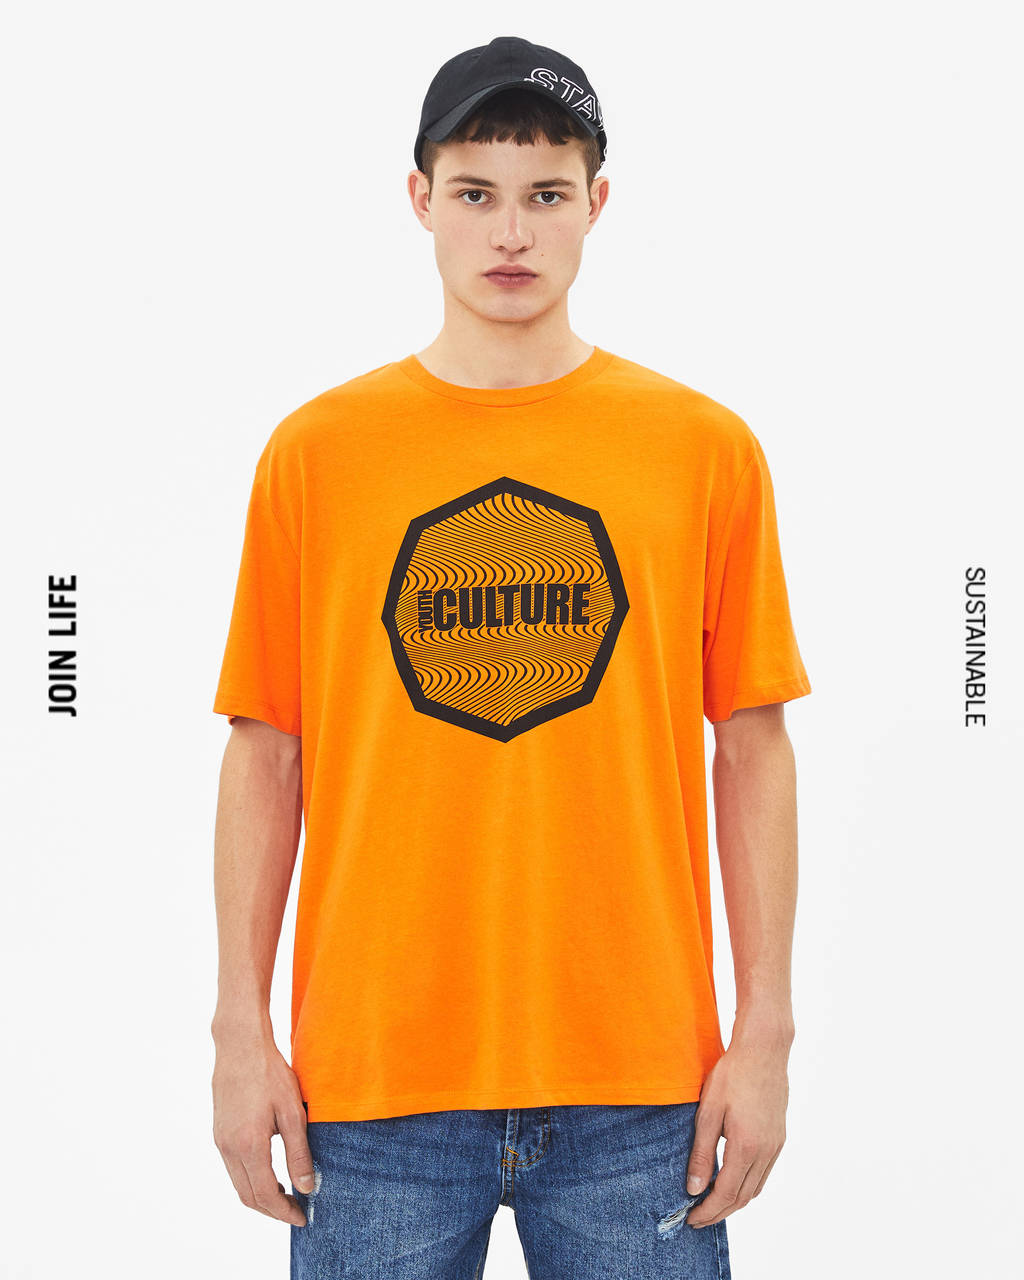 fcbf6b2331de Men's T-Shirts - Summer Sale 2019 | Bershka